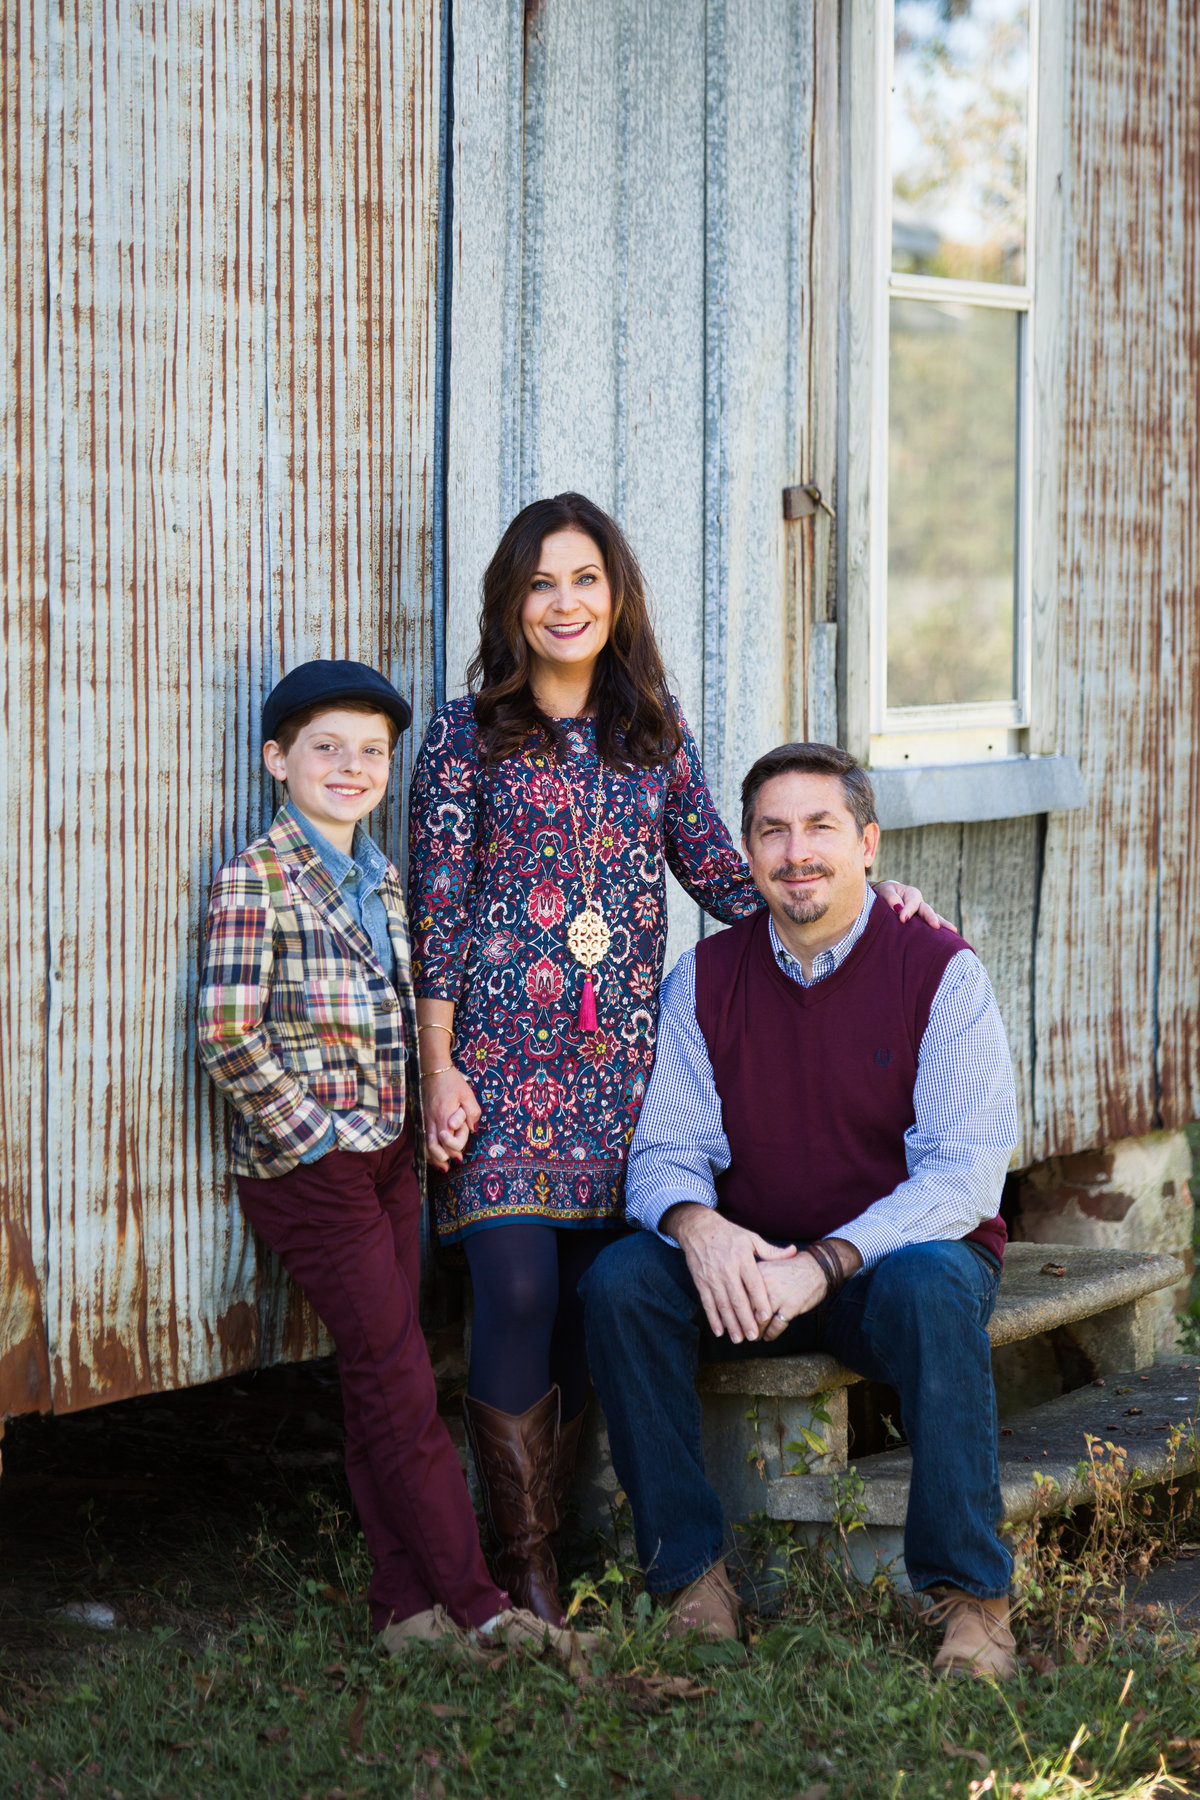 North-Carolina-Family-Photographer-Lindsay-Corrigan-8364